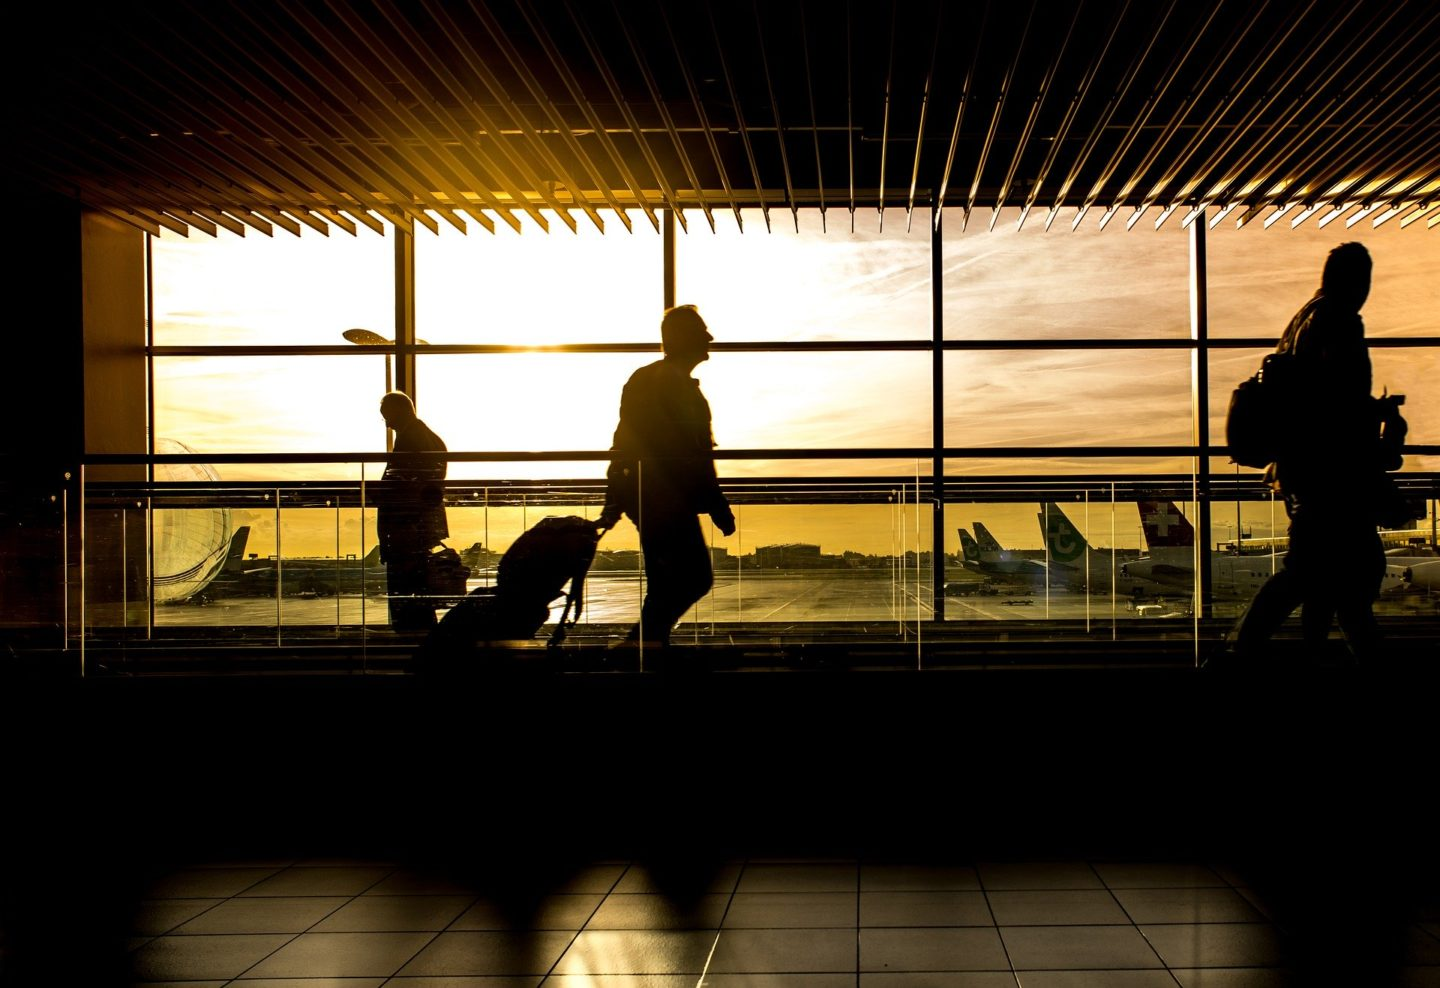 Cheap Holidays Abroad: Booking Early vs Booking Last Minute